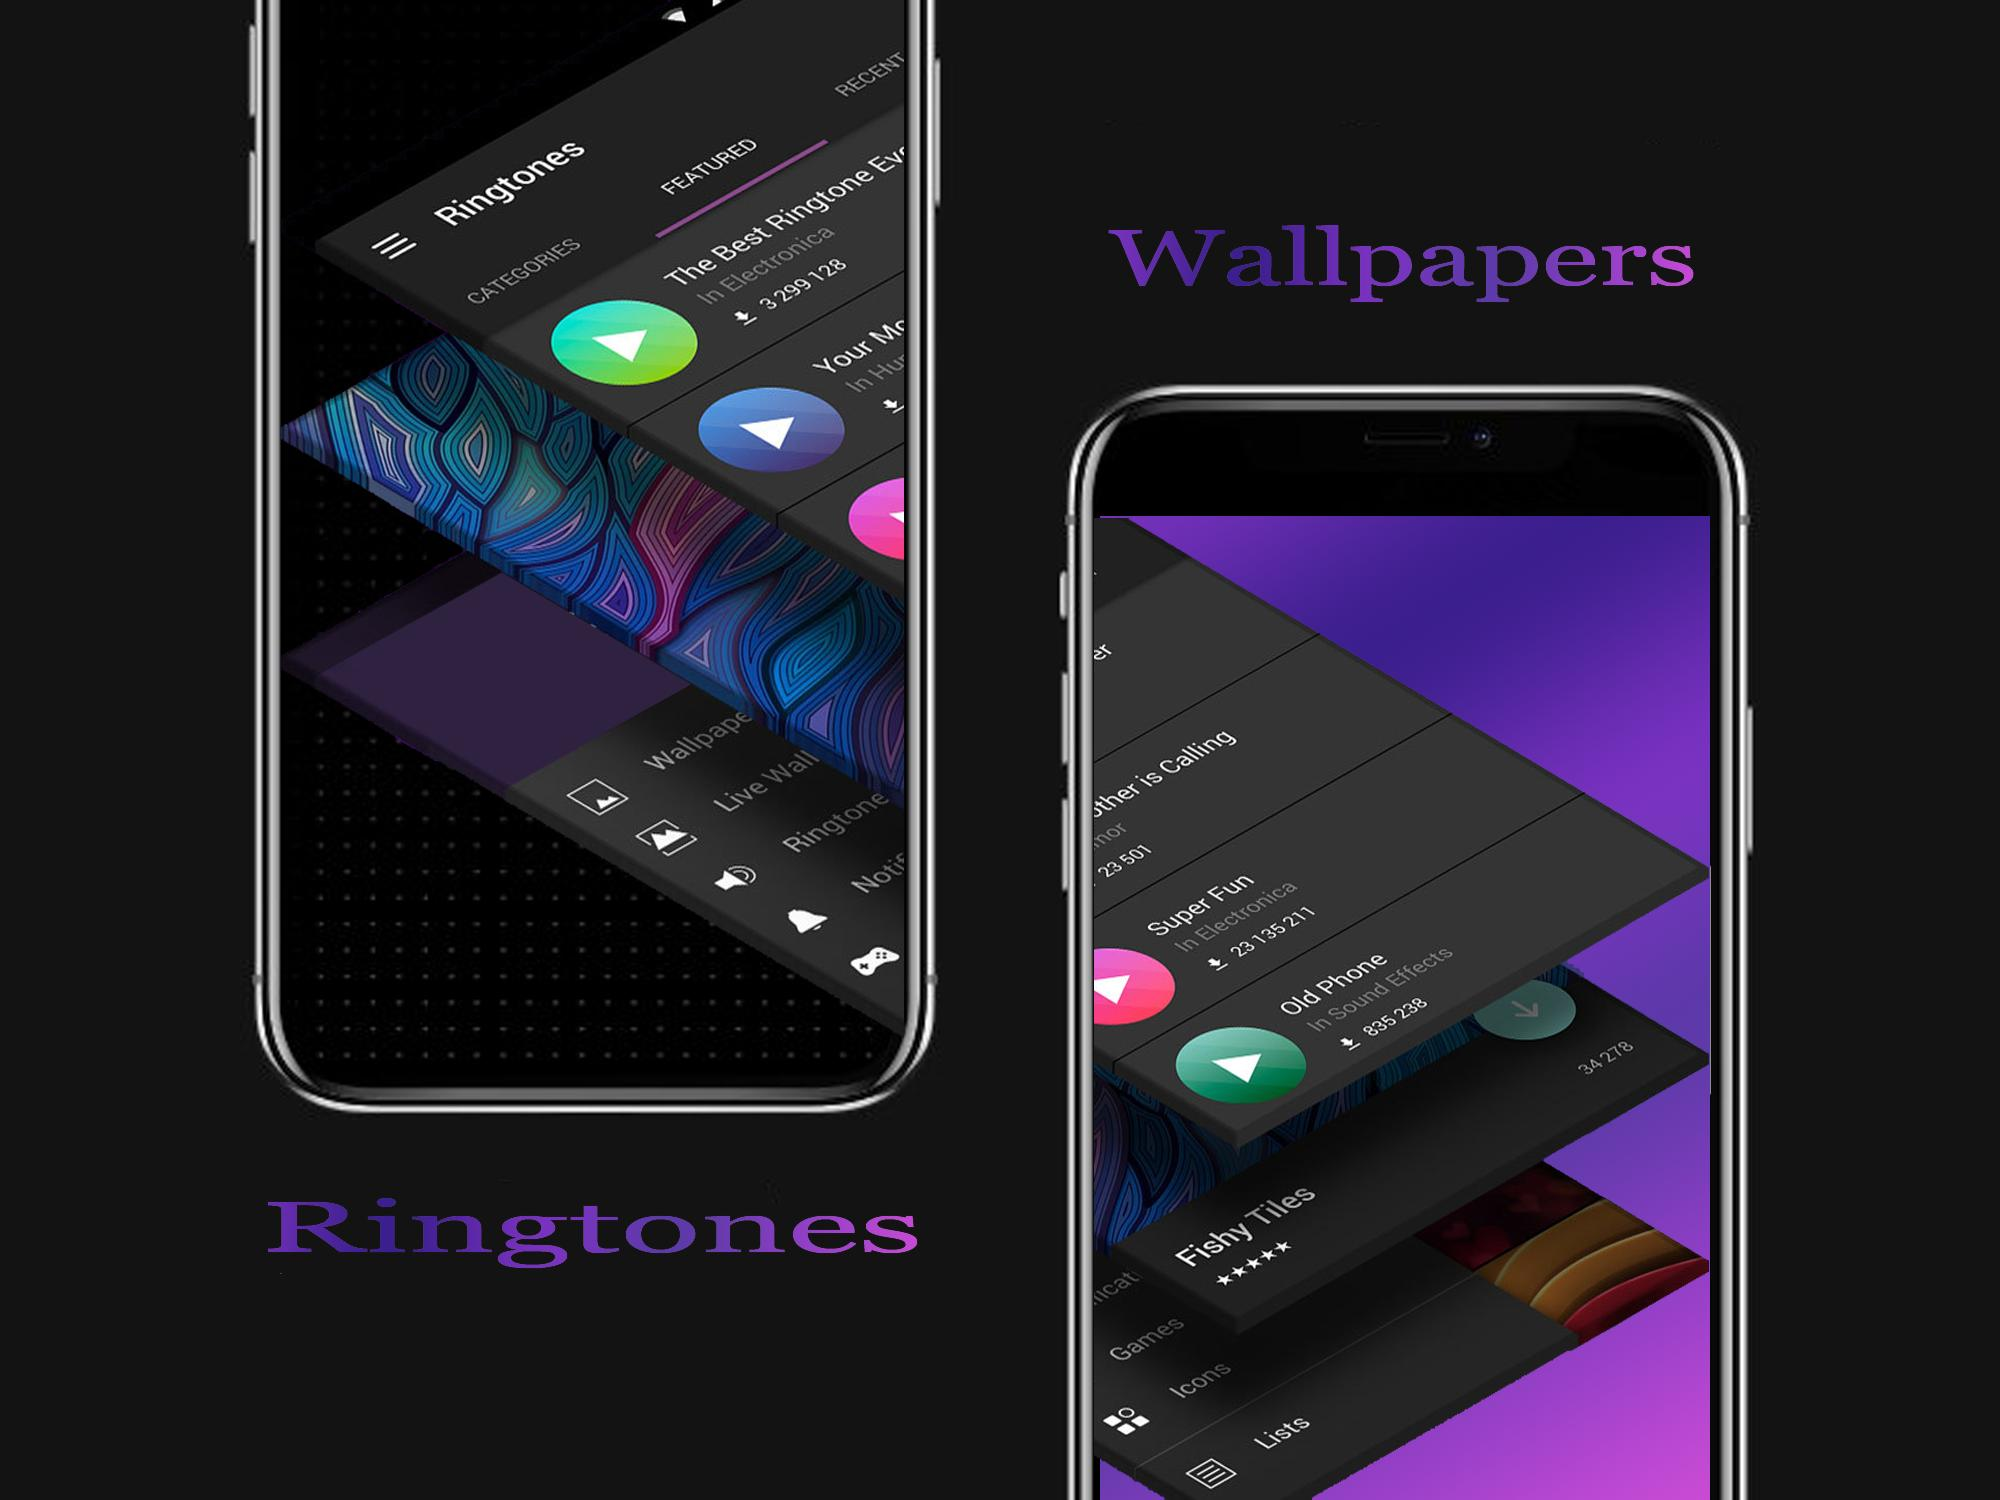 Top Zedge Plus Ringtones And Wallpapers Hd Guide For Android Apk